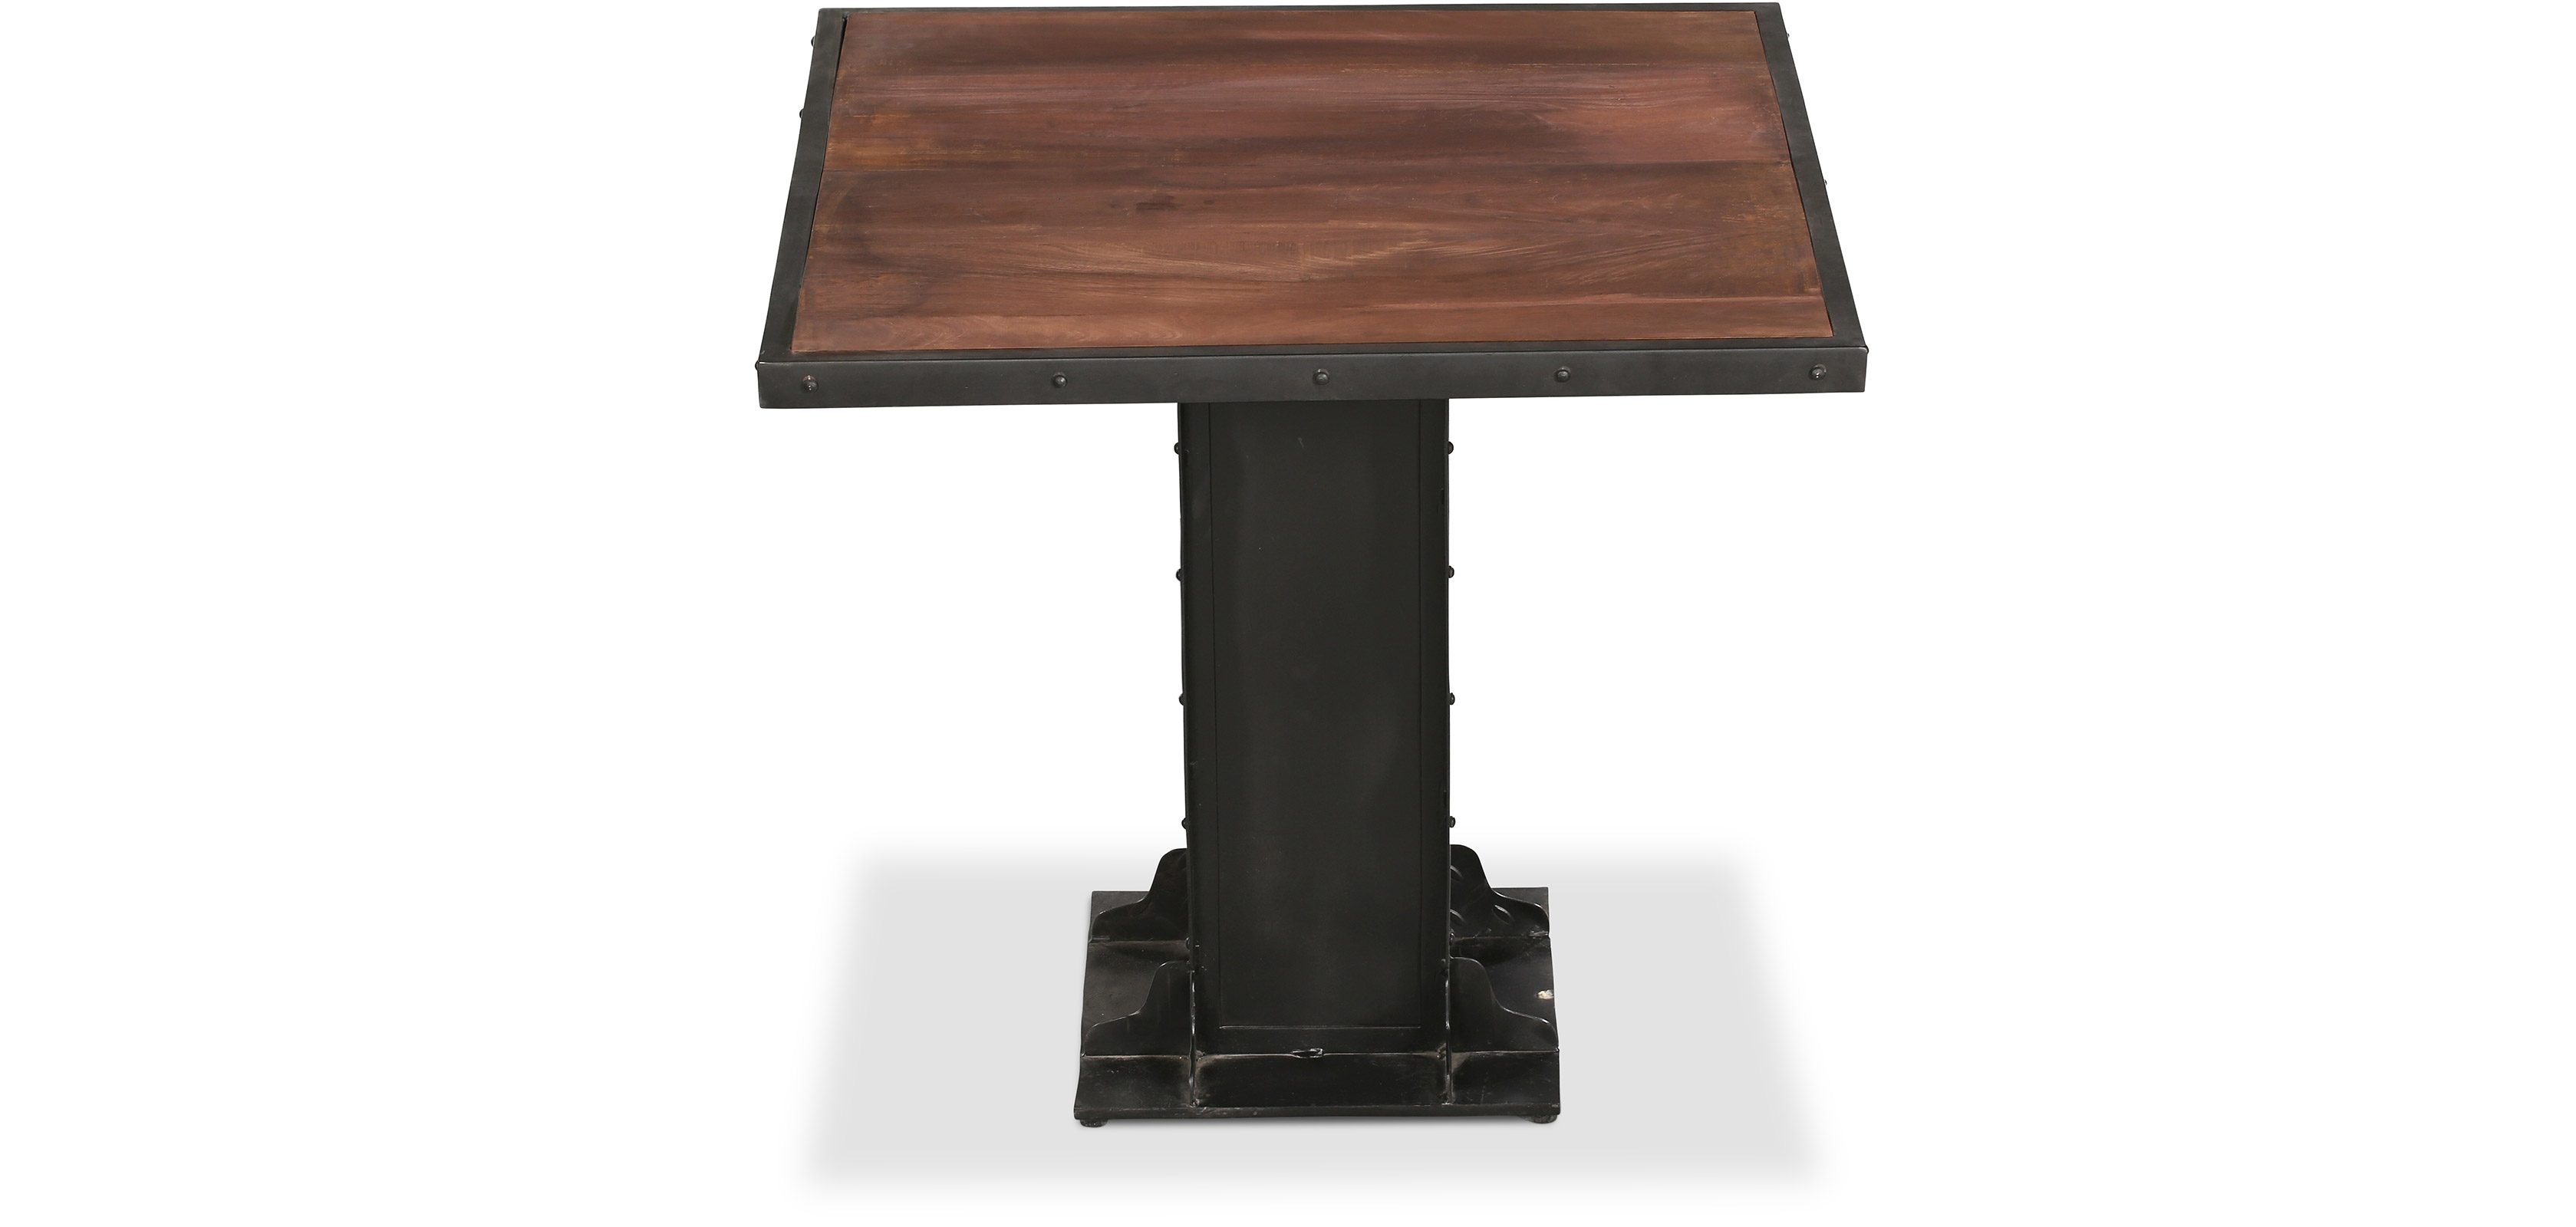 Buy Industrial style metal Square dining table - Avara Steel 58582 - in the UK